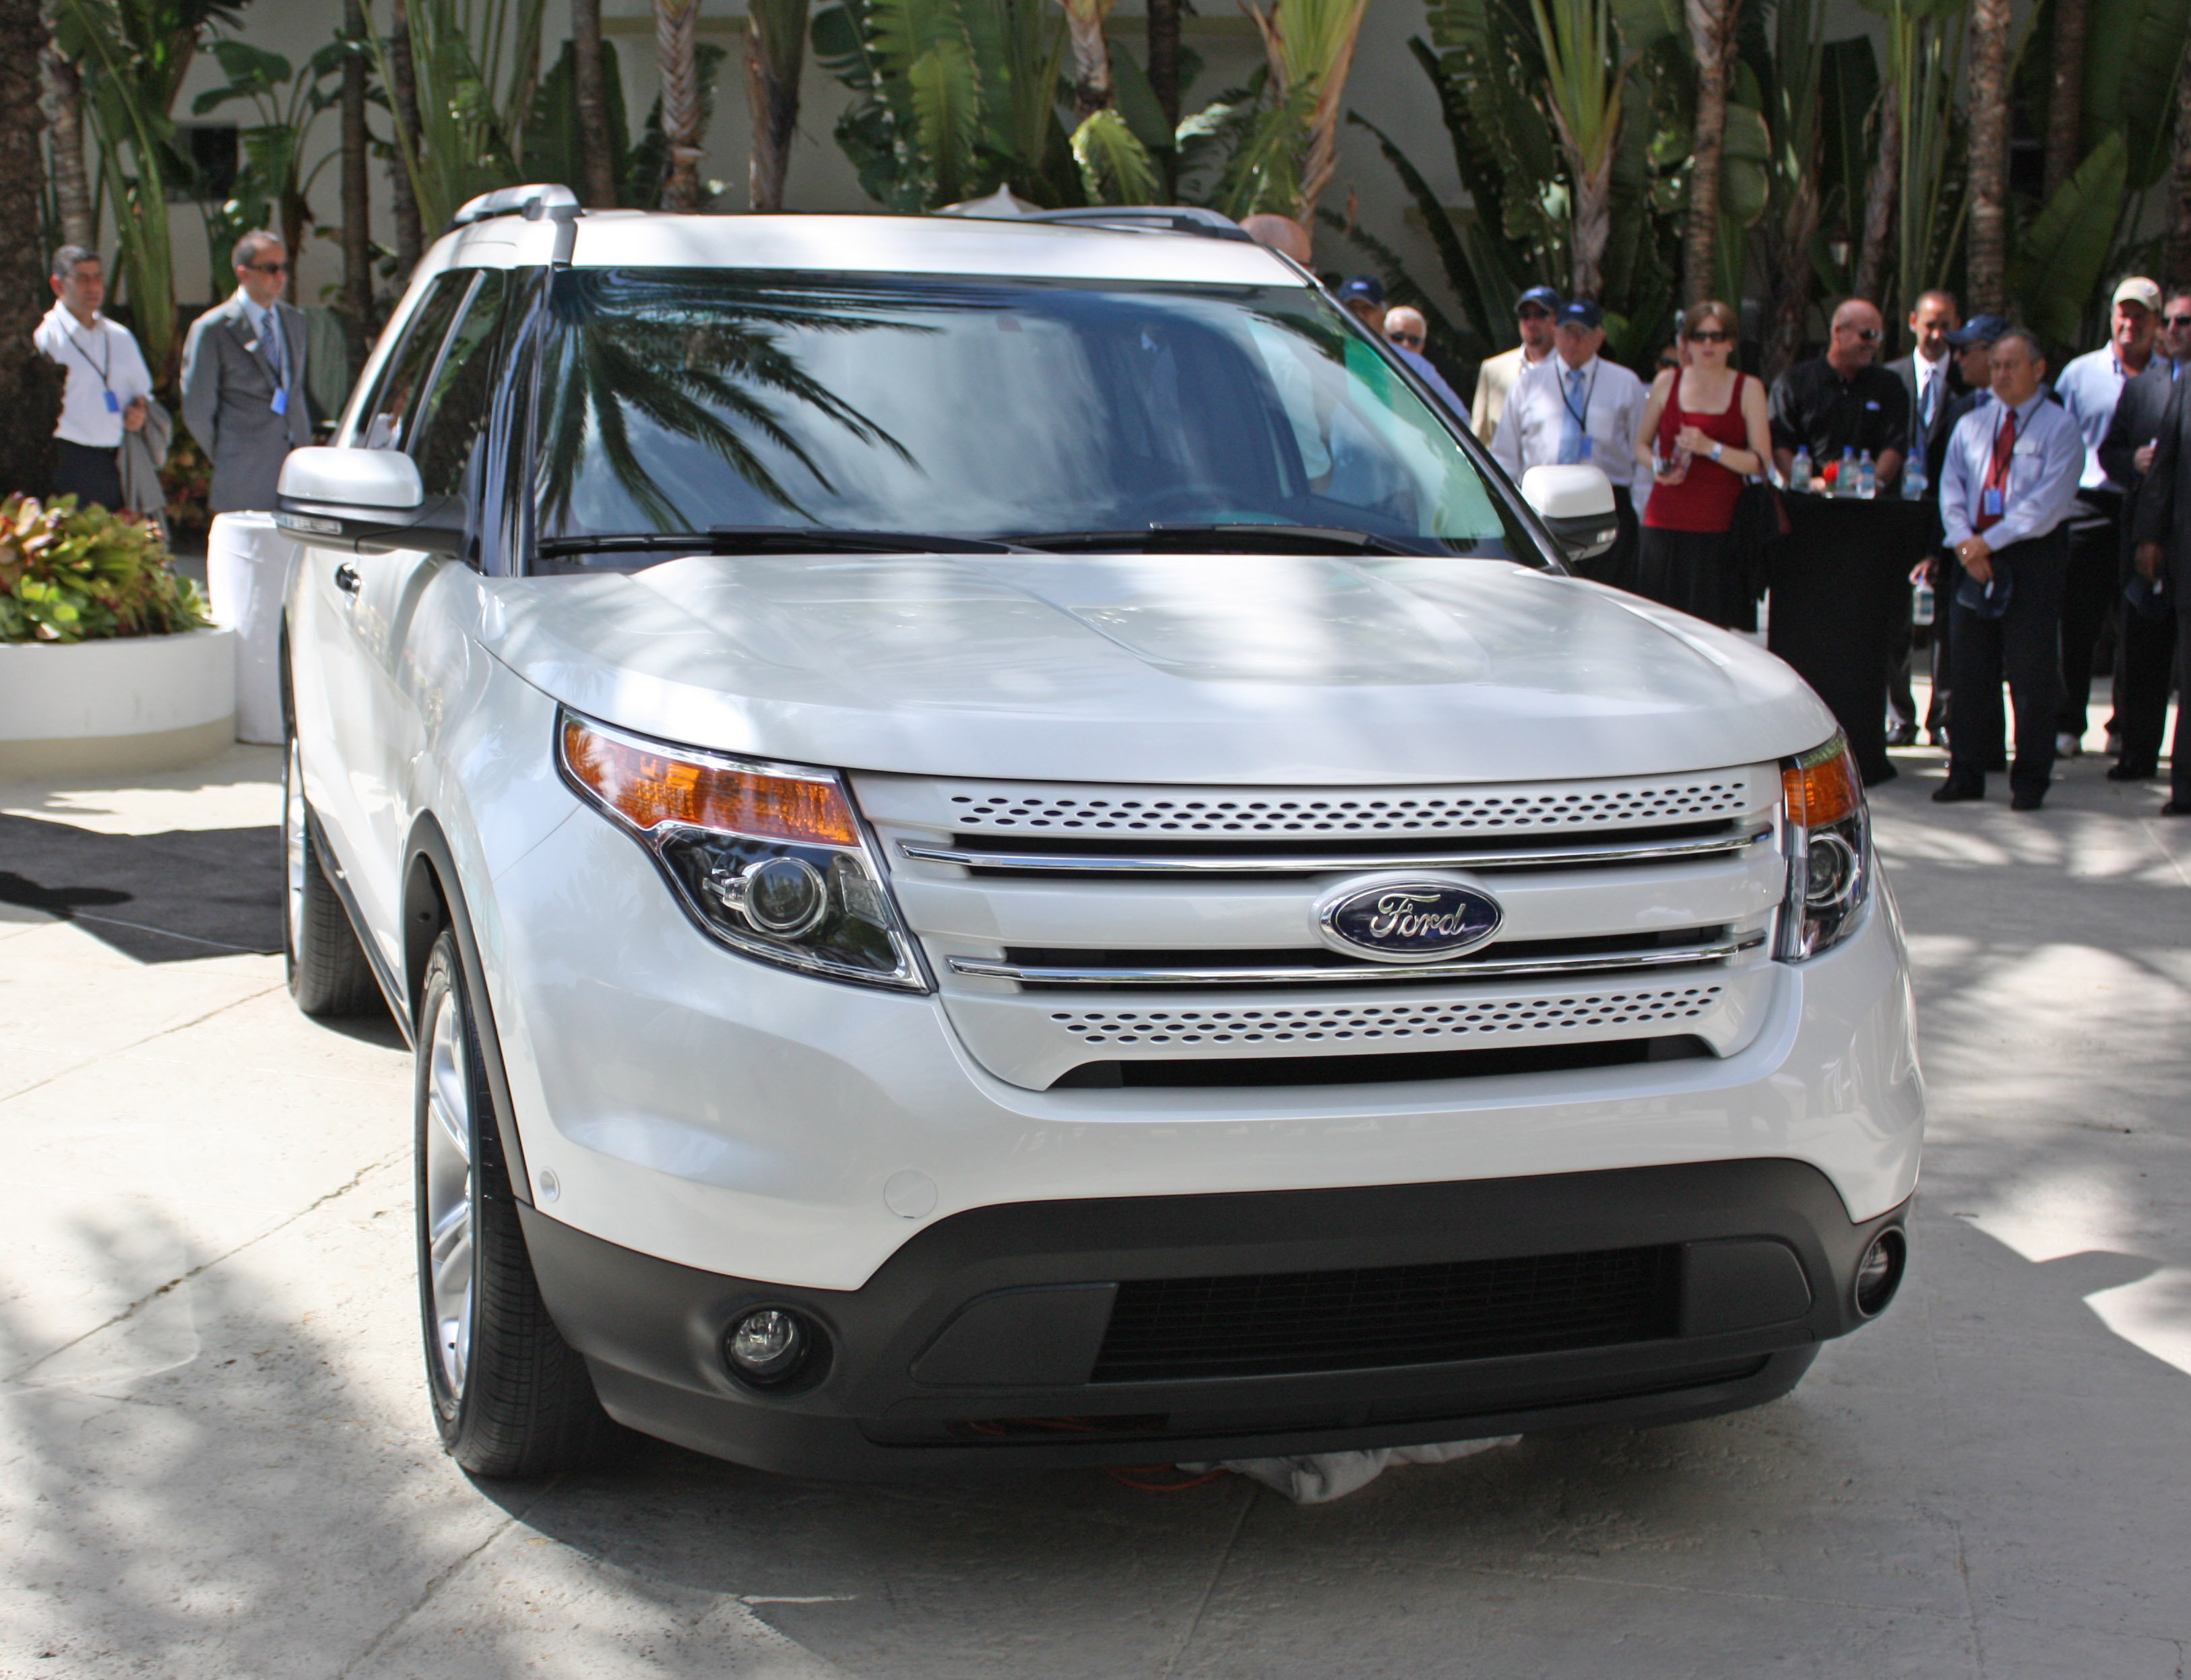 1144 2011 Ford Explorer 12 likewise TH9006XT as well Ford Ranger 2 5 2014 Specs And Images additionally 157899 furthermore Gallery. on 2012 ford explorer